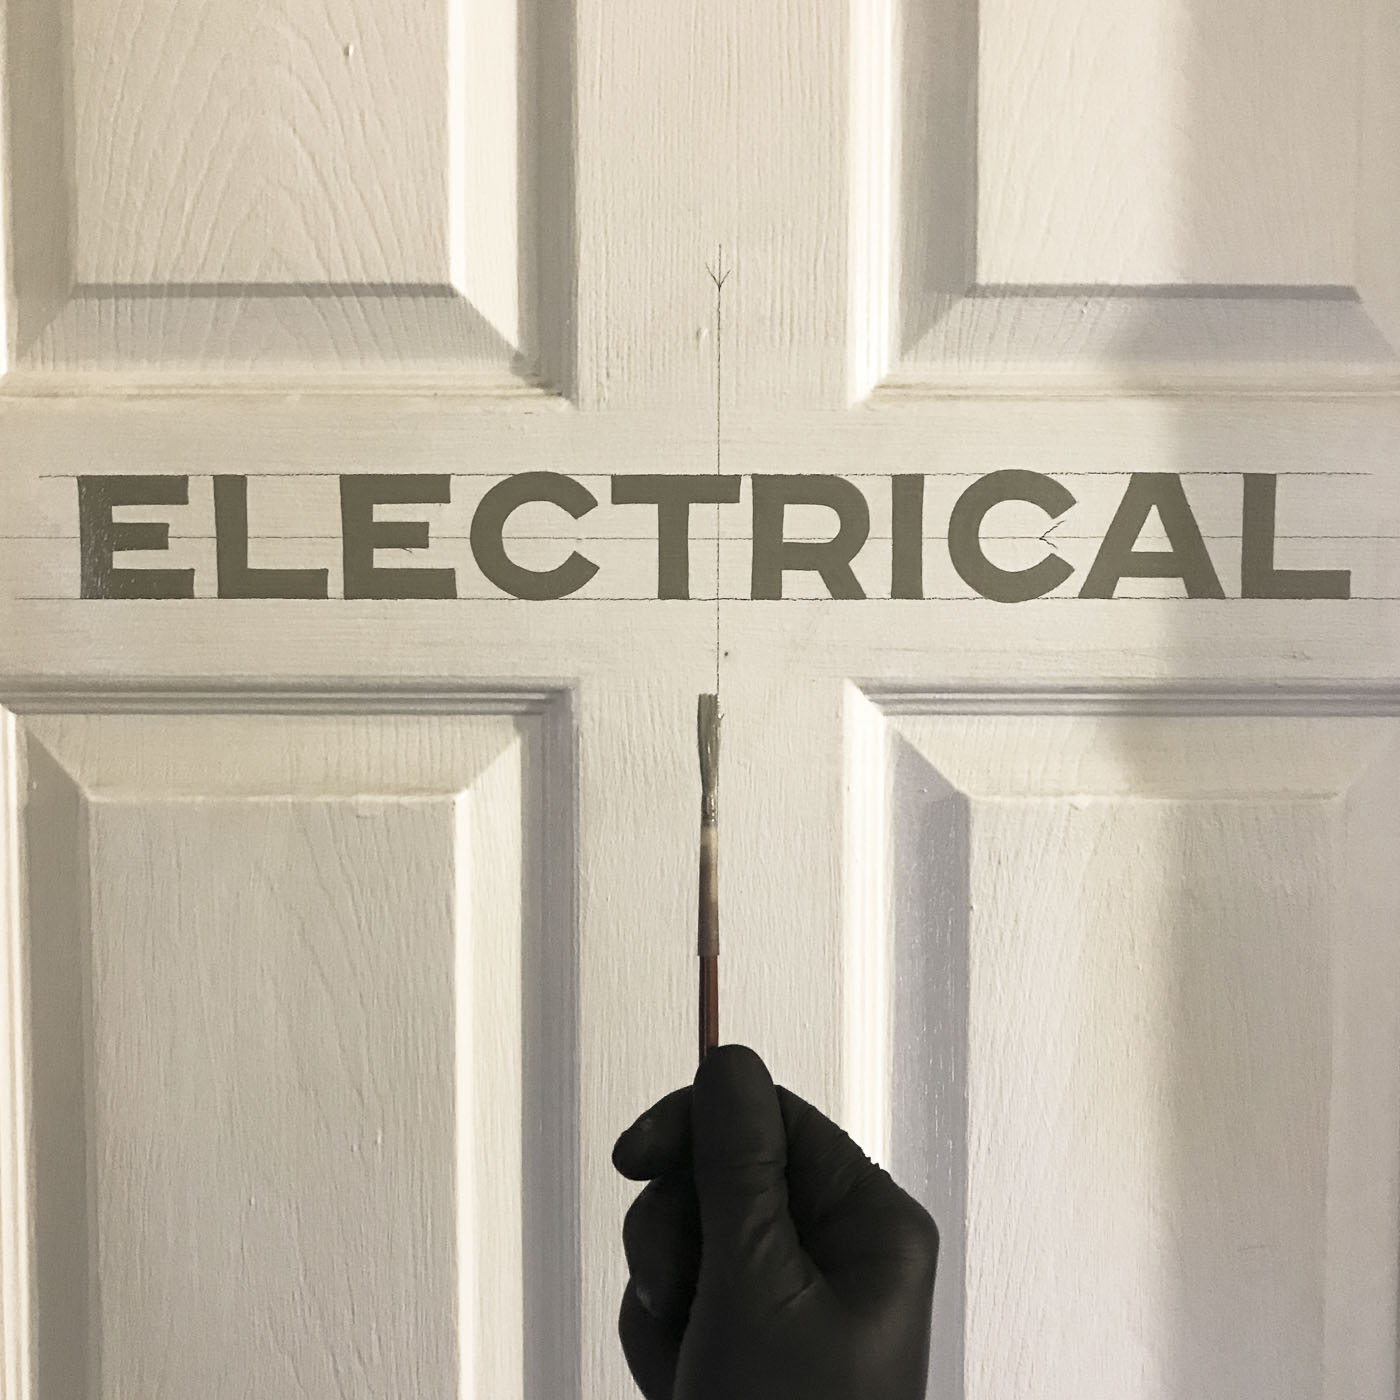 Electrical block lettering